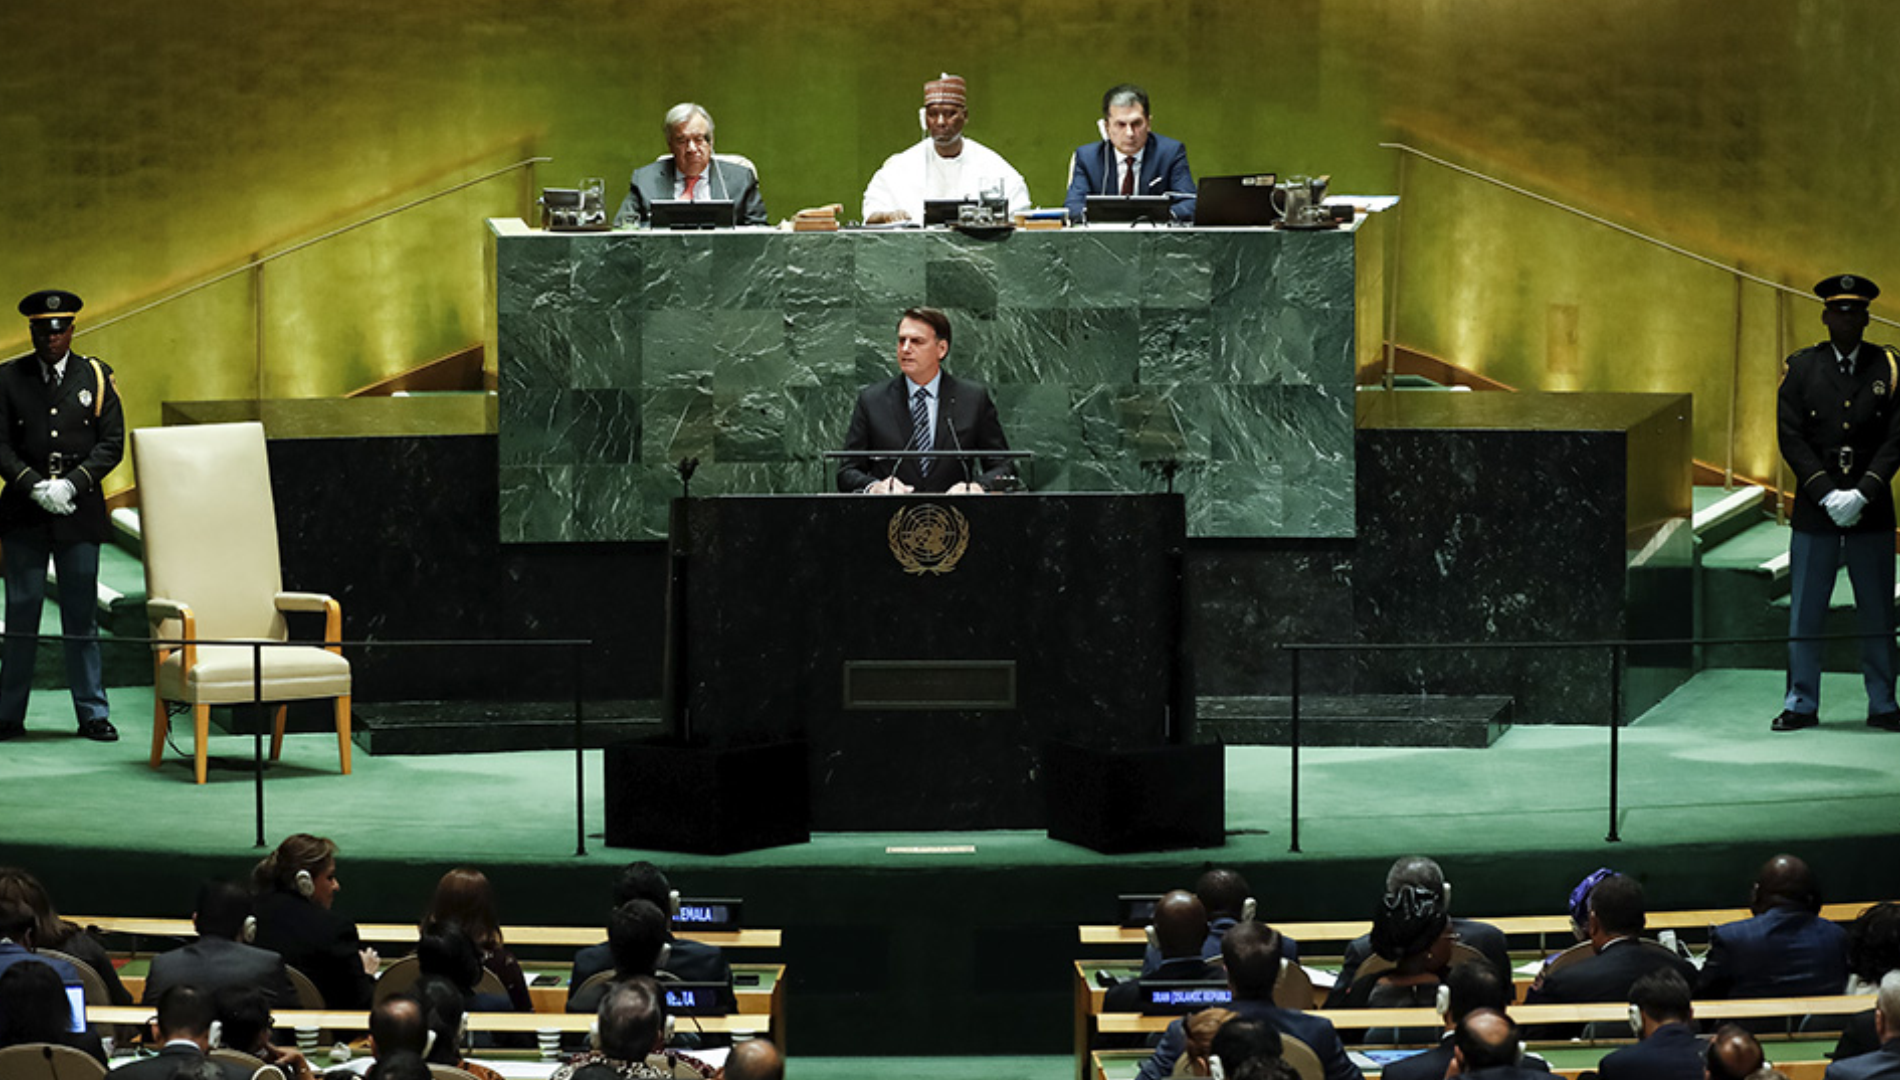 Watch the speech by Brazil's President Jair Bolsonaro at the UN General Assembly